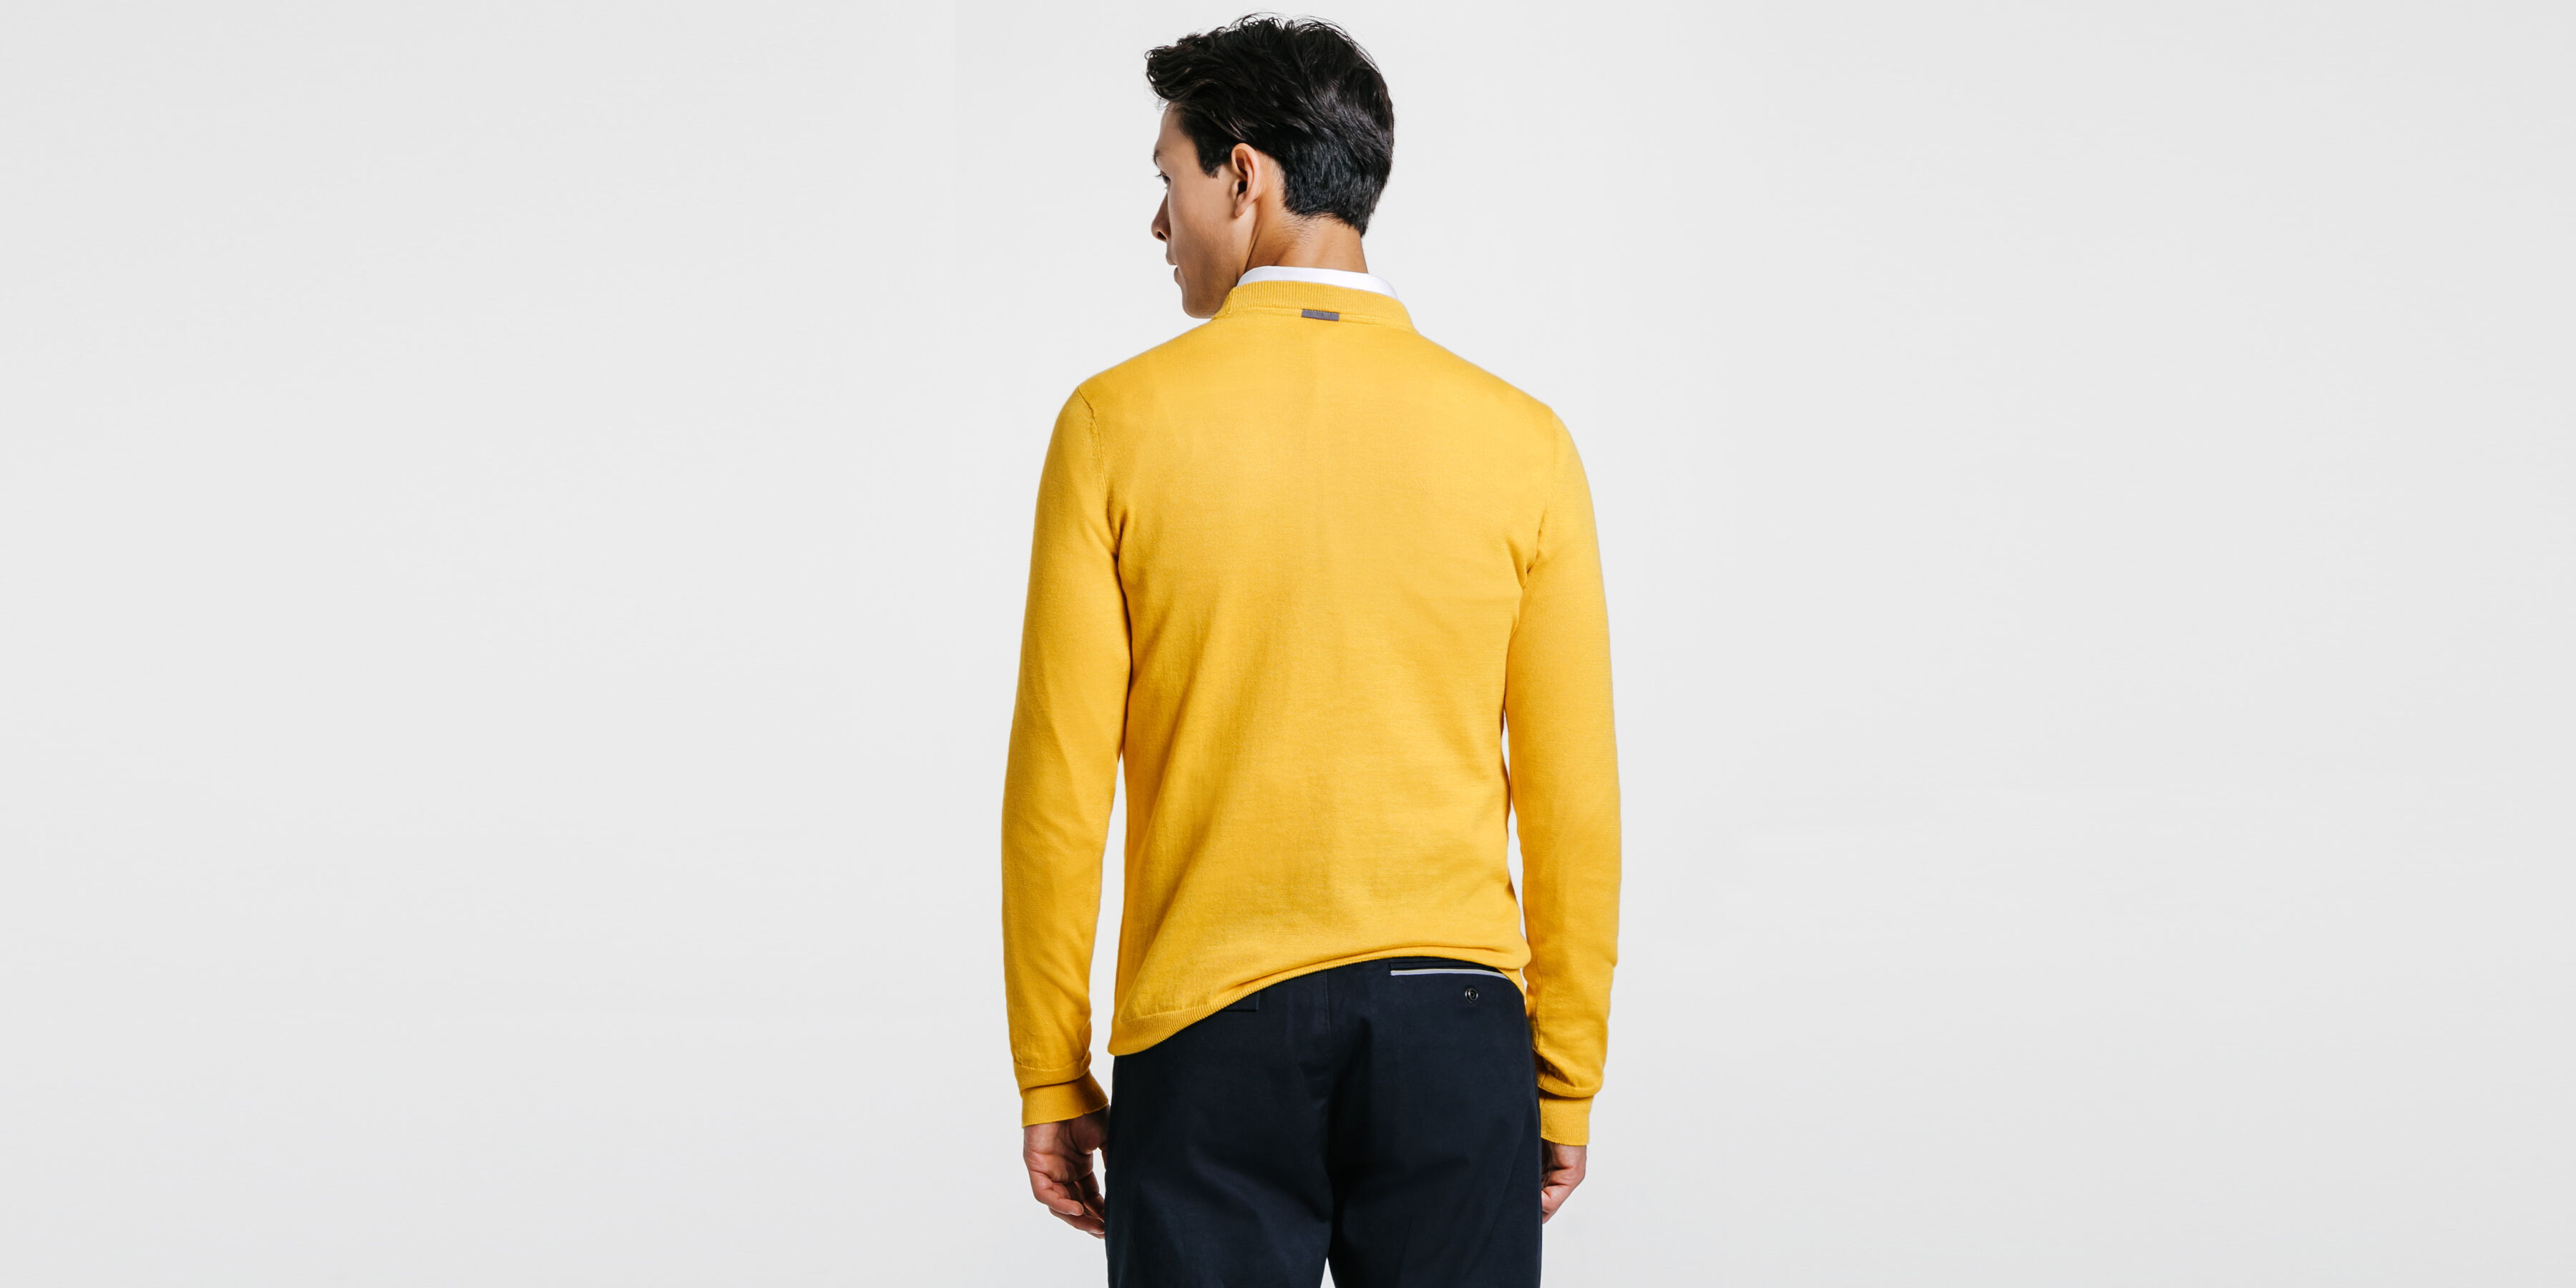 ca24aaf453726 Pull Jaune Moutarde Homme Jules Urbanizer Collection FqFxgwT6A